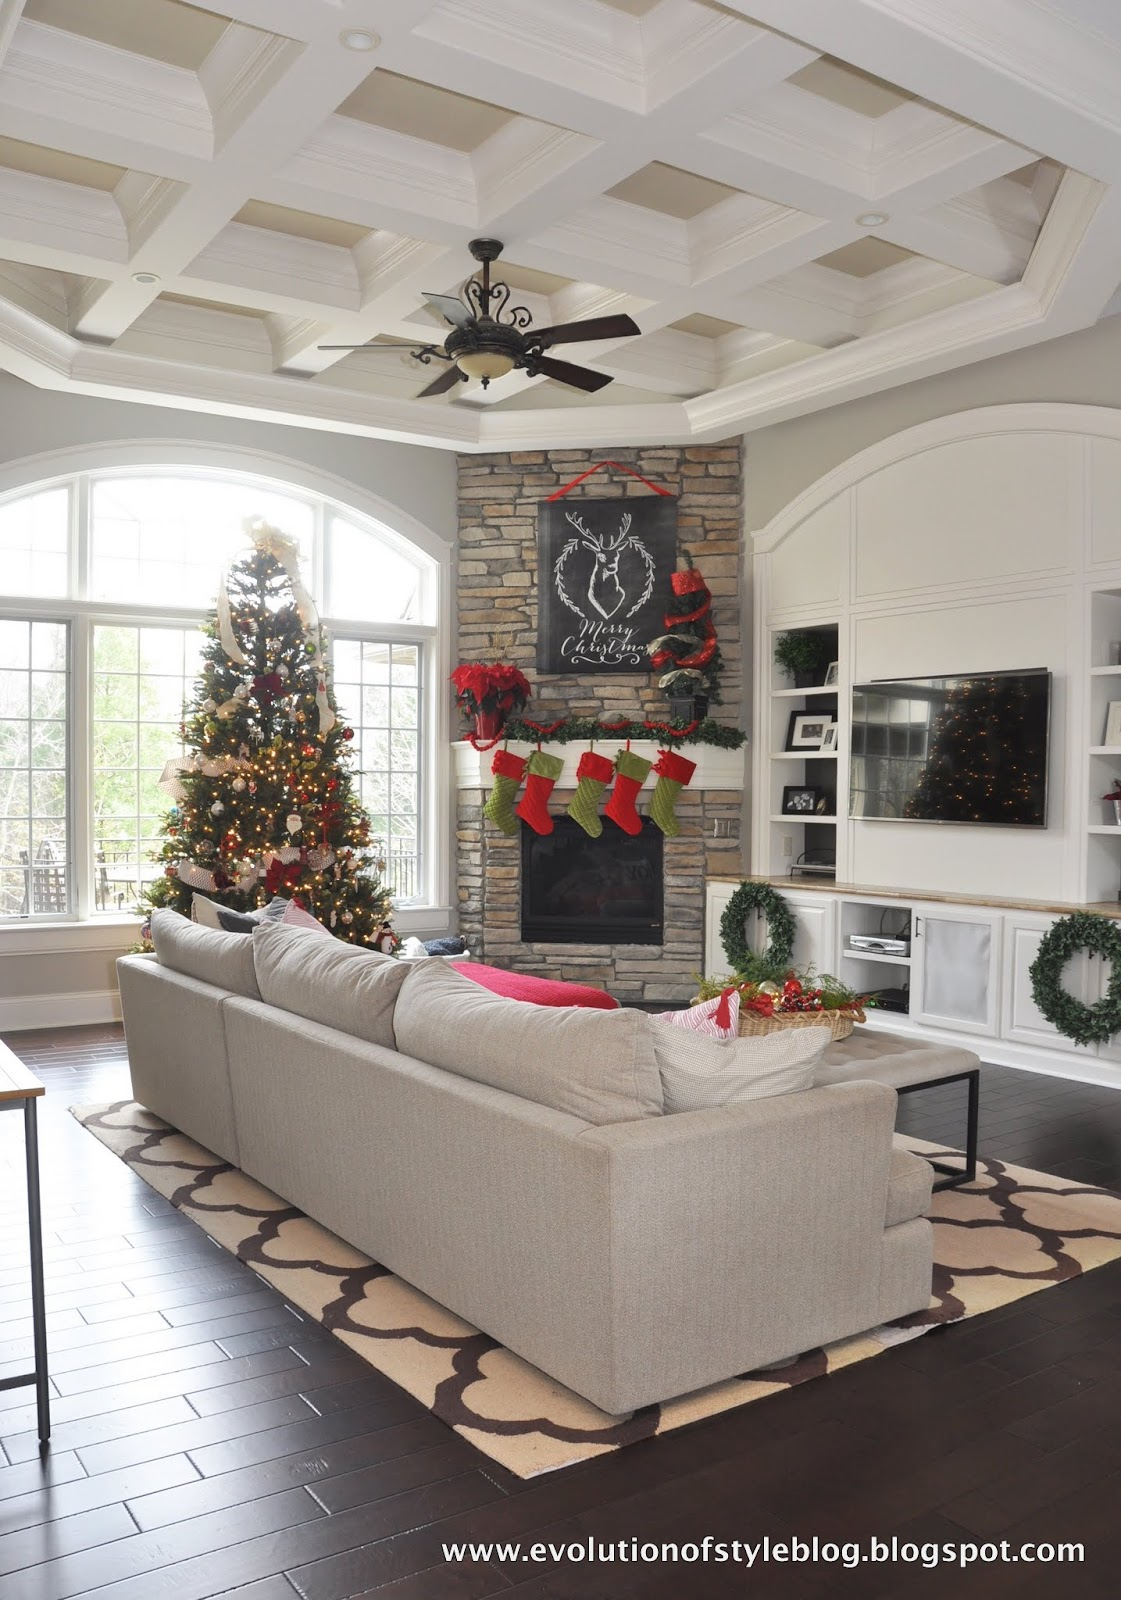 Day 1: 12 Days of Christmas Tour of Homes 2015 - Evolution of Style